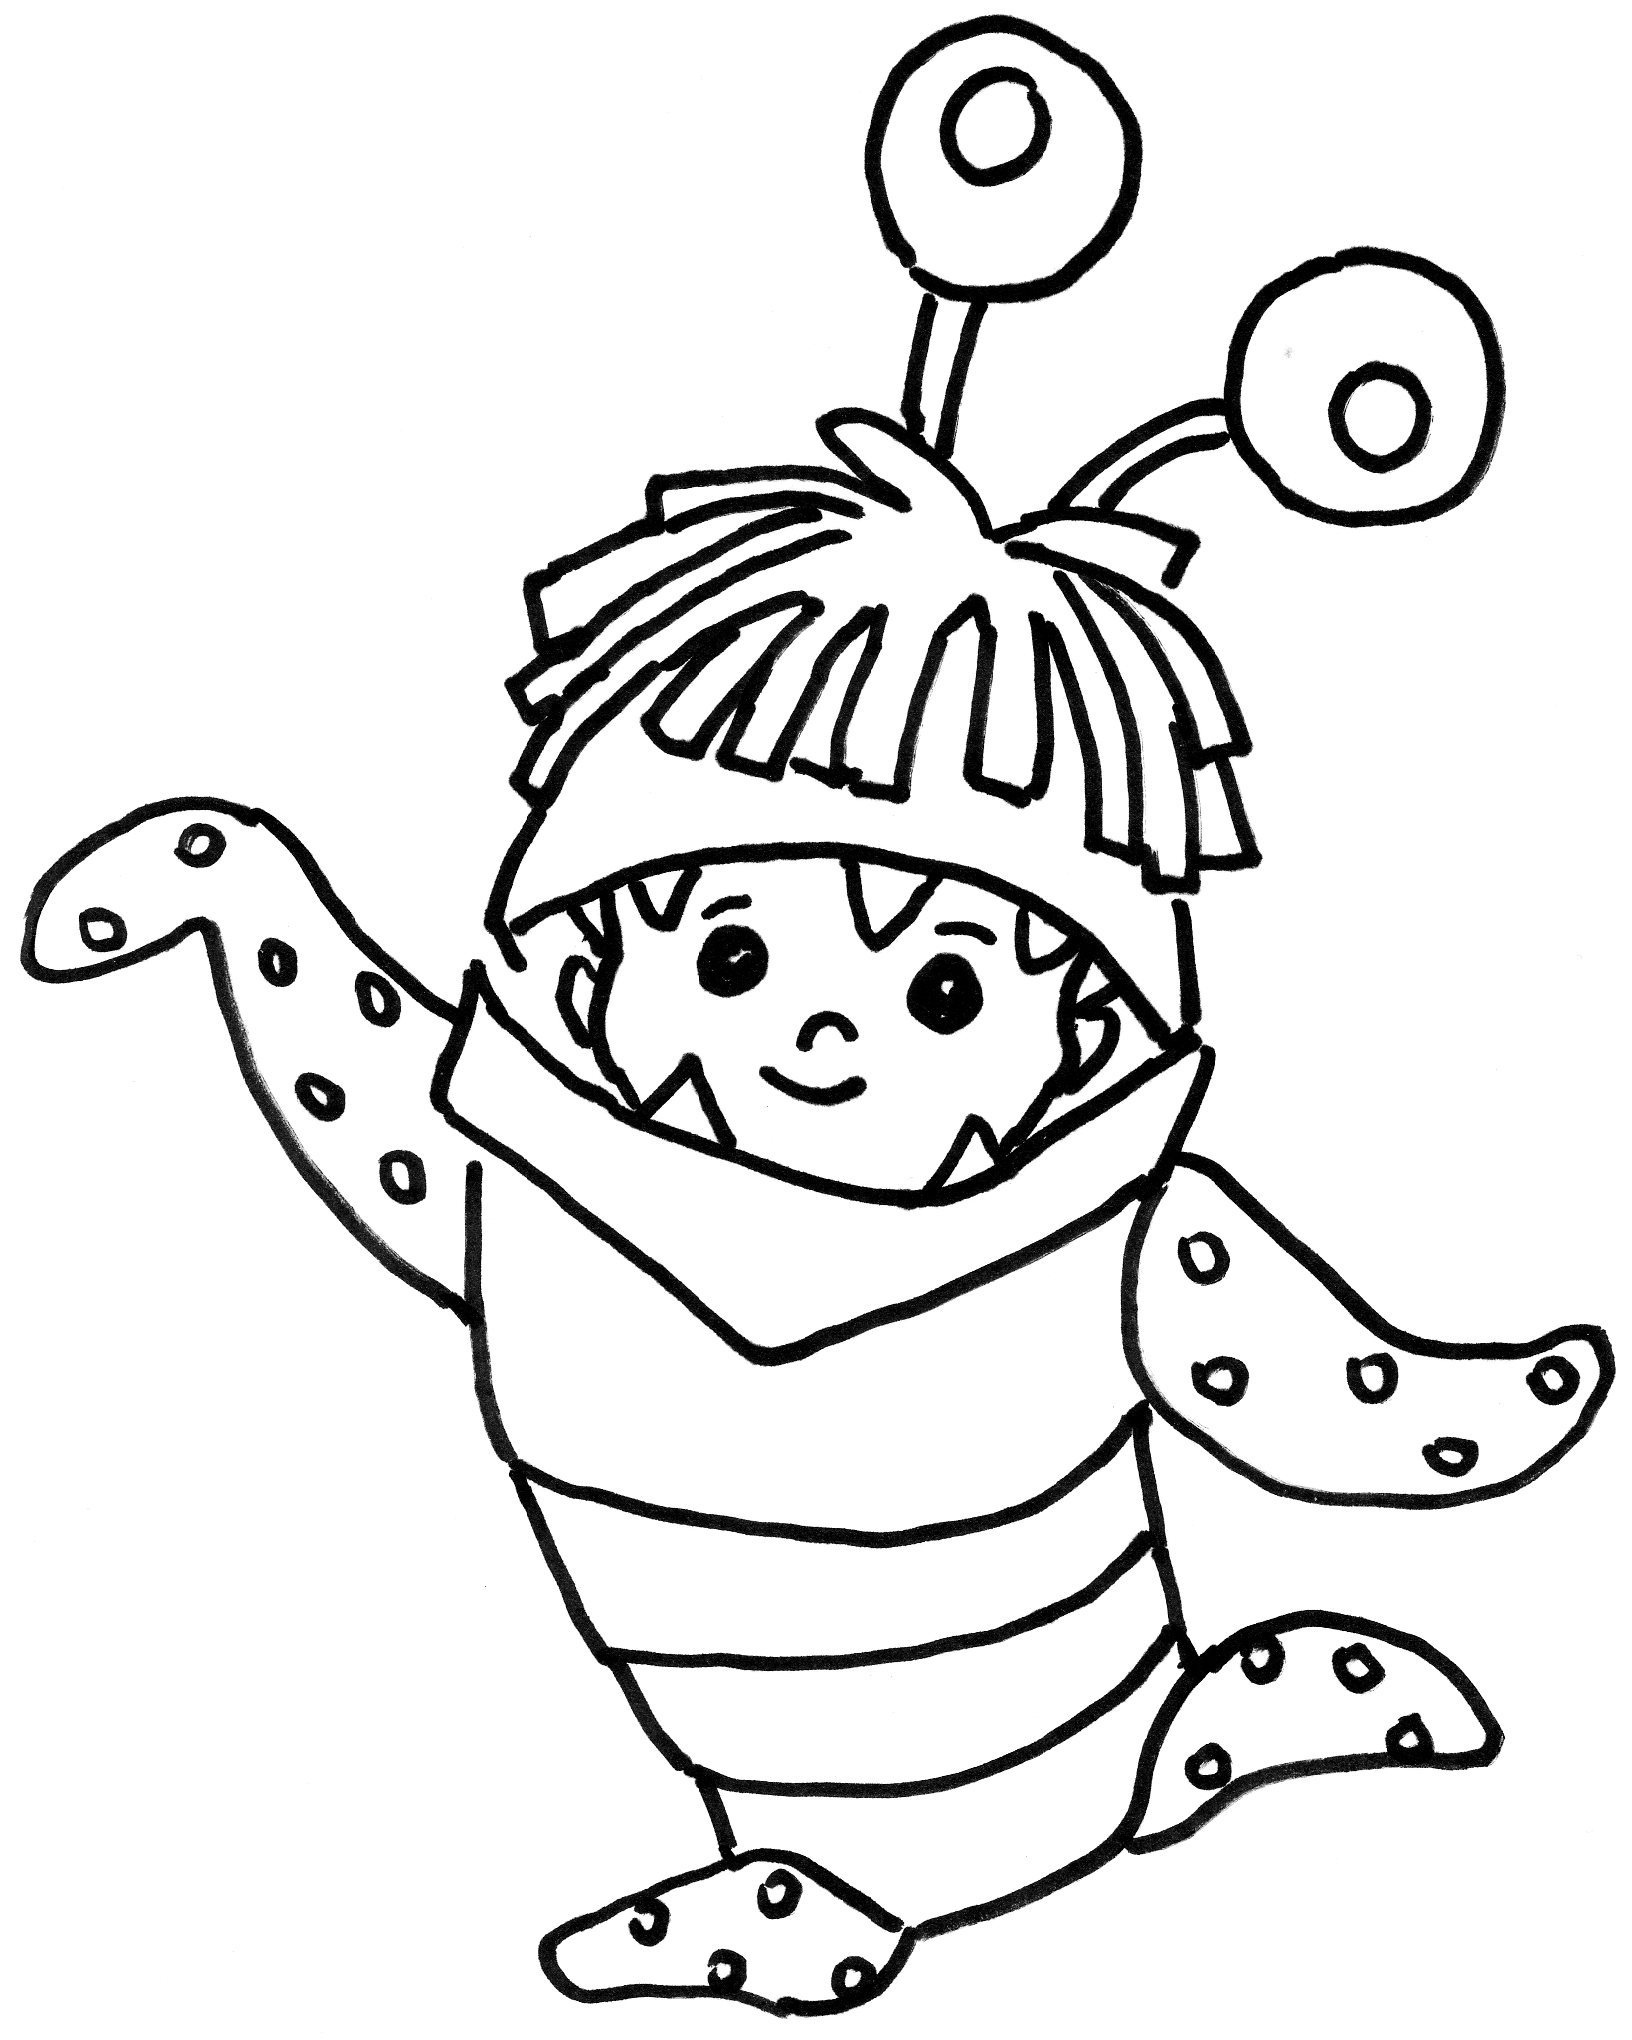 1632x2040 New Monsters Inc Coloring Pages Free Coloring Pages Download